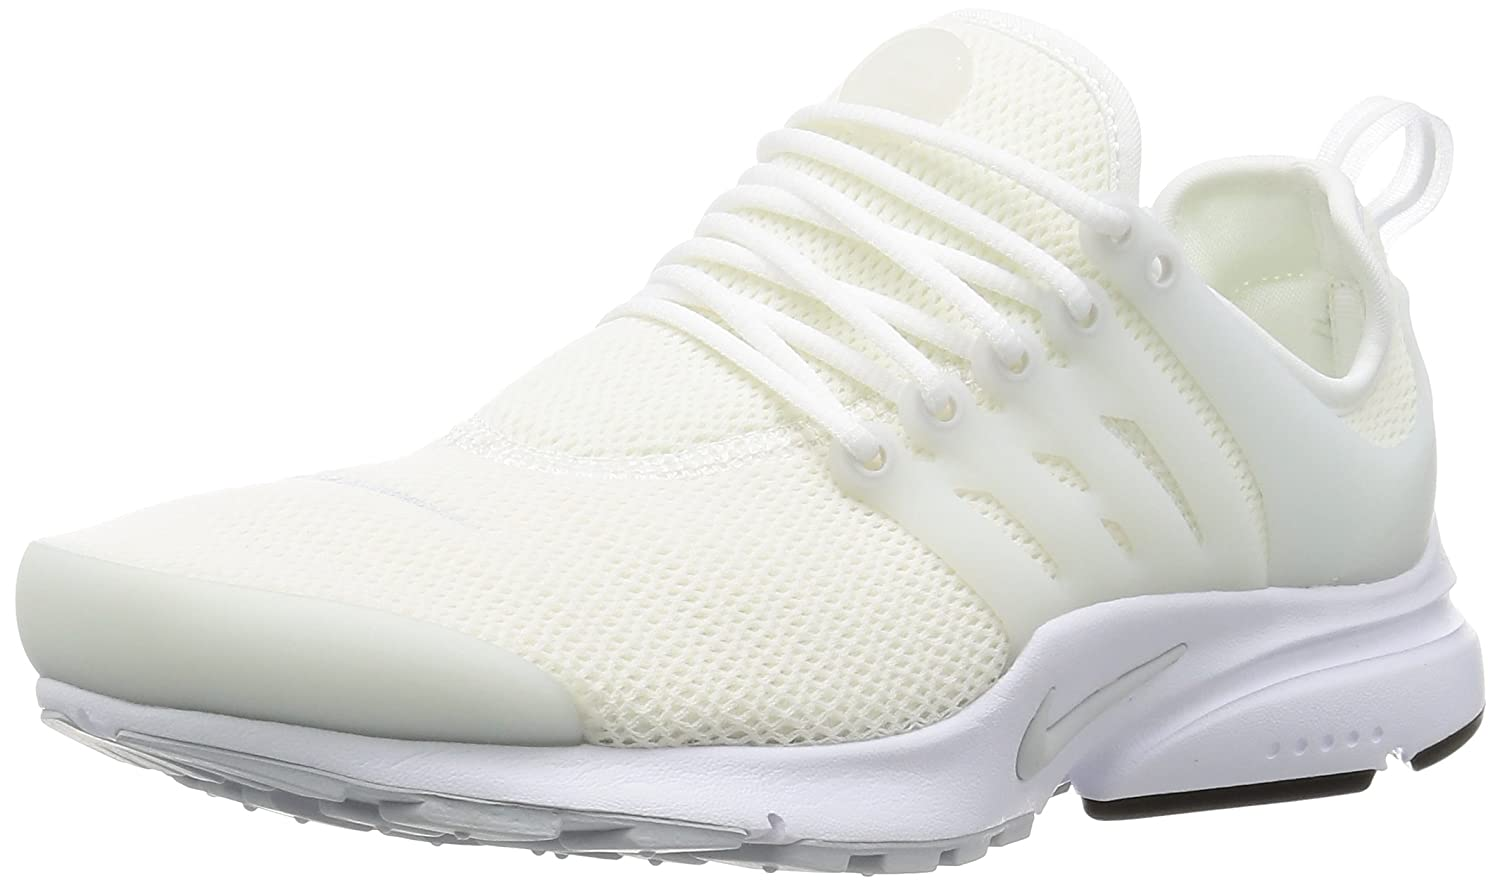 low cost 76a0d ce221 Amazon.com   Nike Women s Air Presto Running Shoe   Road Running